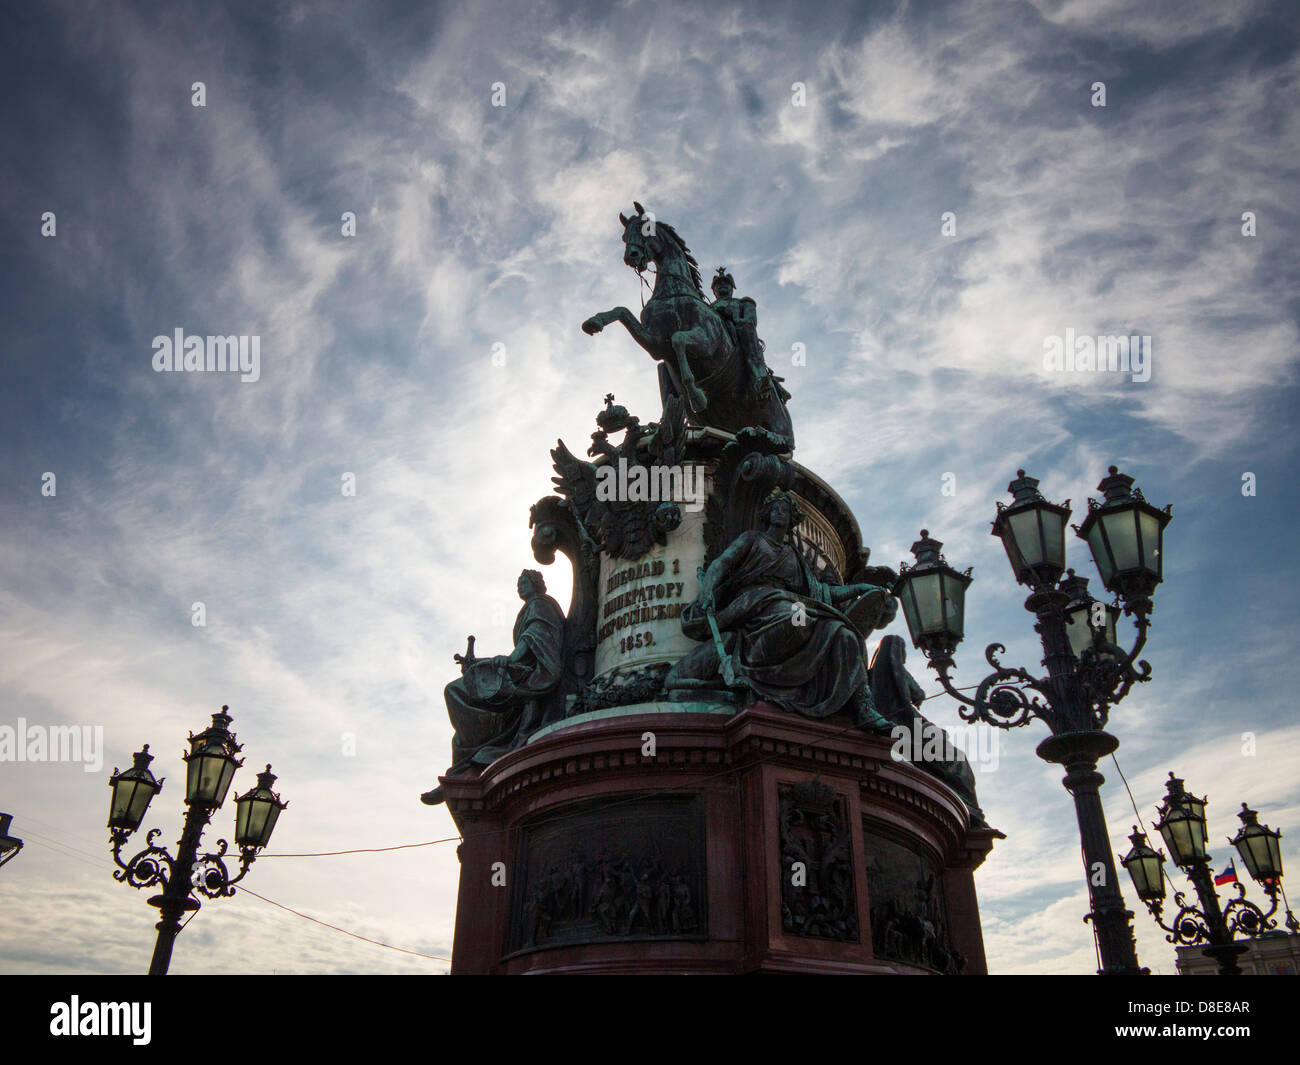 Equestrian statue of Emperor Nicholas I at Isaac Square, Saint Petersburg, Russia - Stock Image